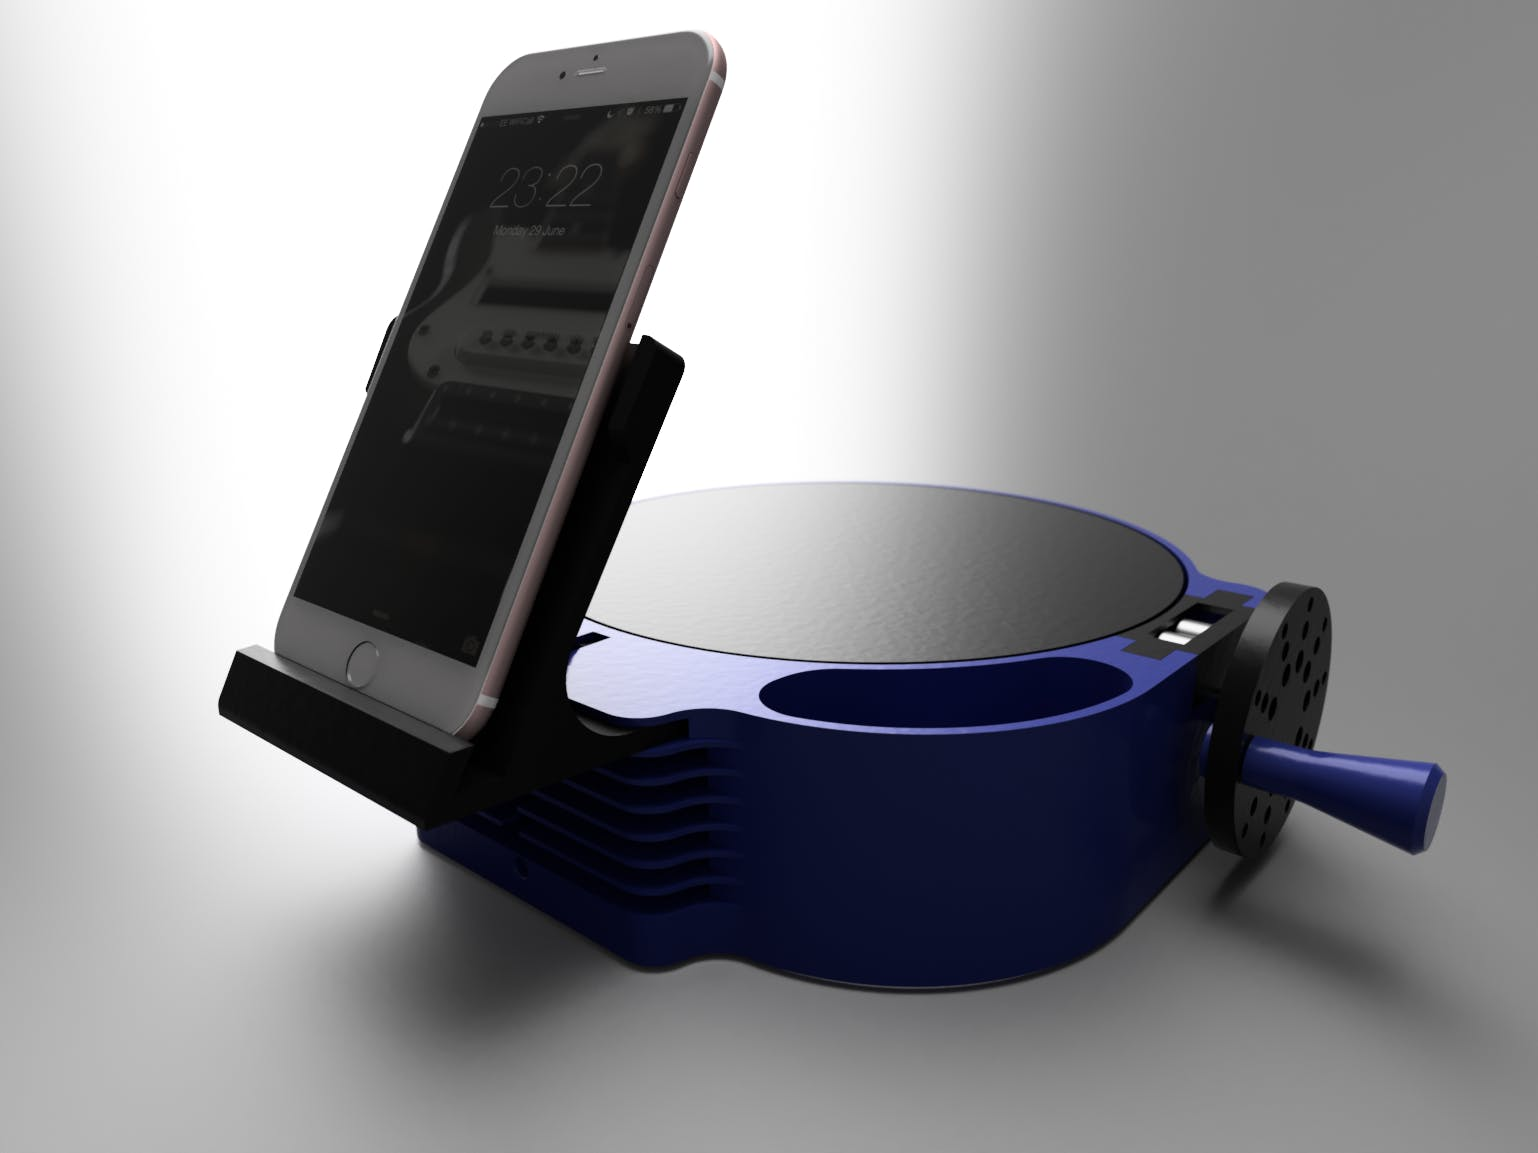 3D Scanner Turntable for Cell Phones (updated)